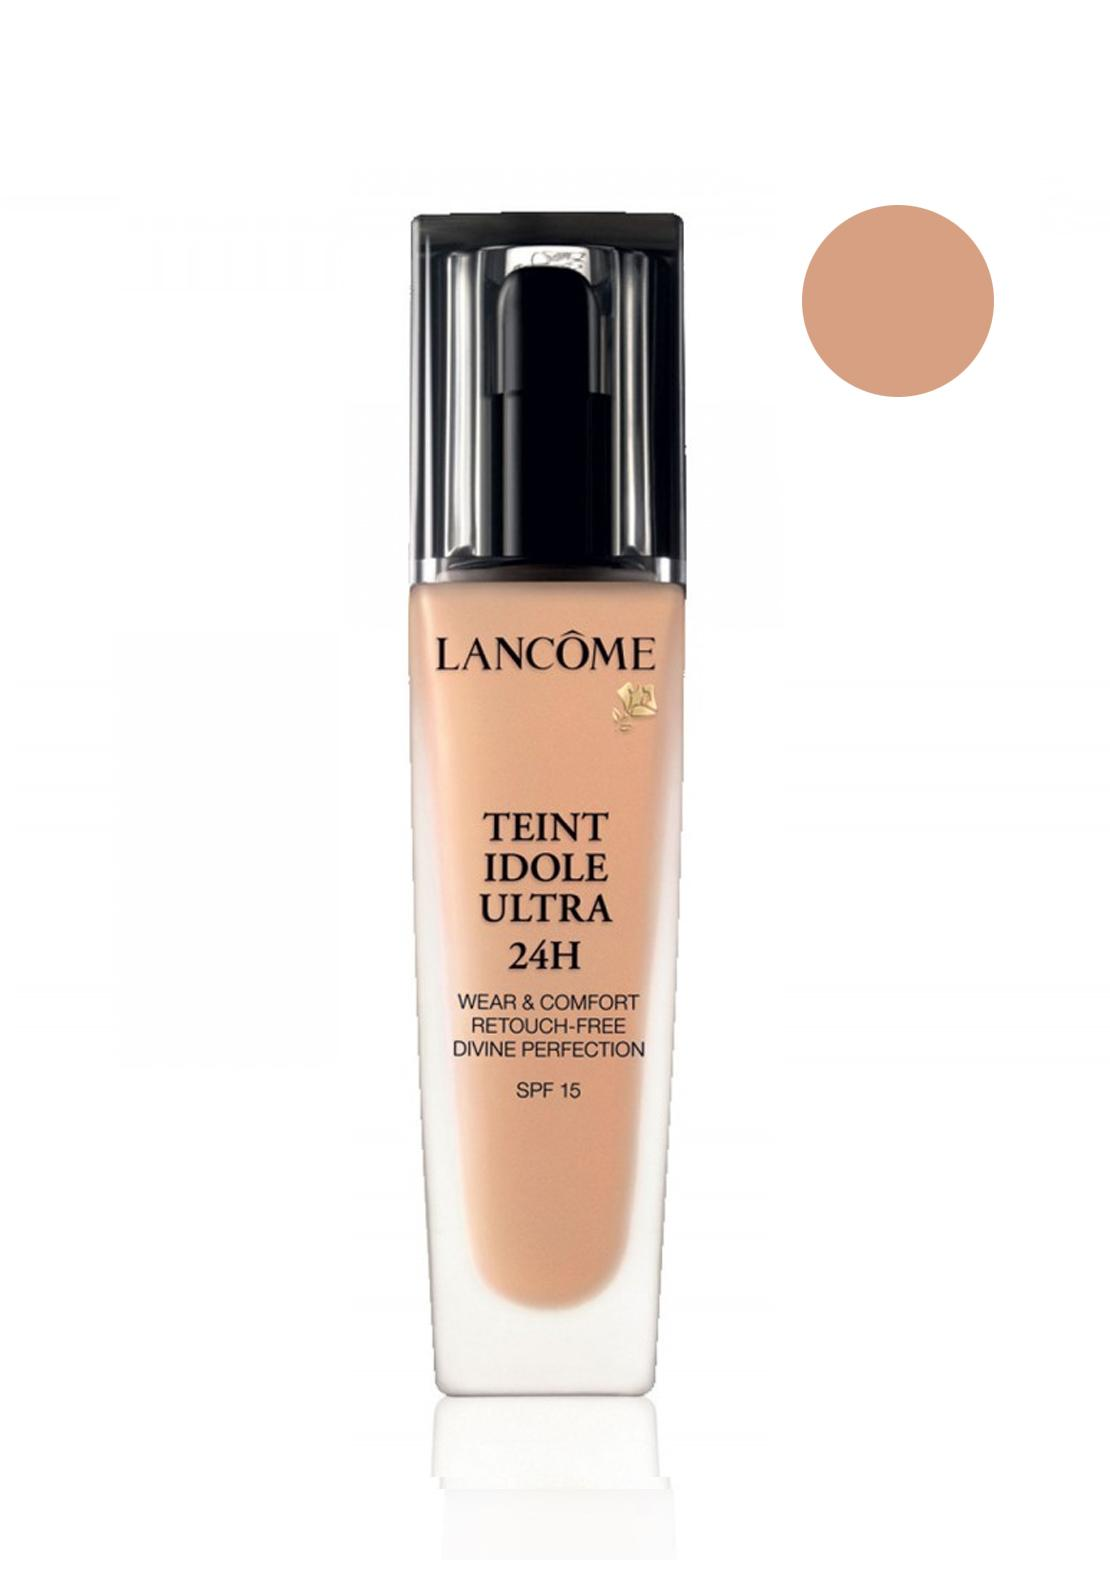 Lancome Teint Idole Ultra Foundation, Lancome Sable Beige 30ml